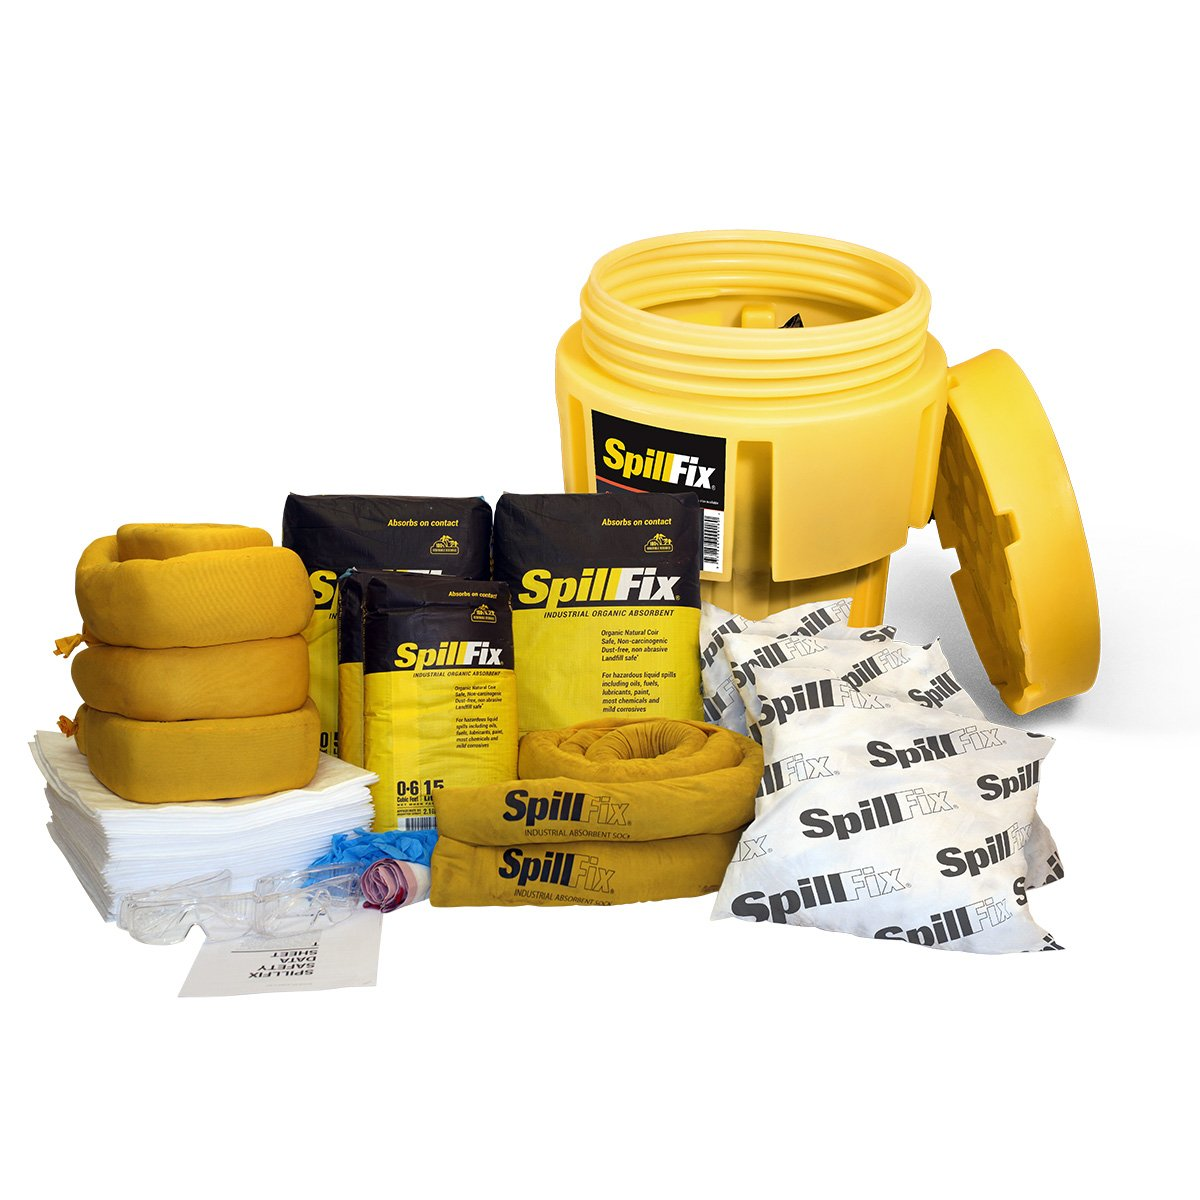 SpillFix Oil-Only Spill Kit in 65 Gallon Overpack Salvage Drum